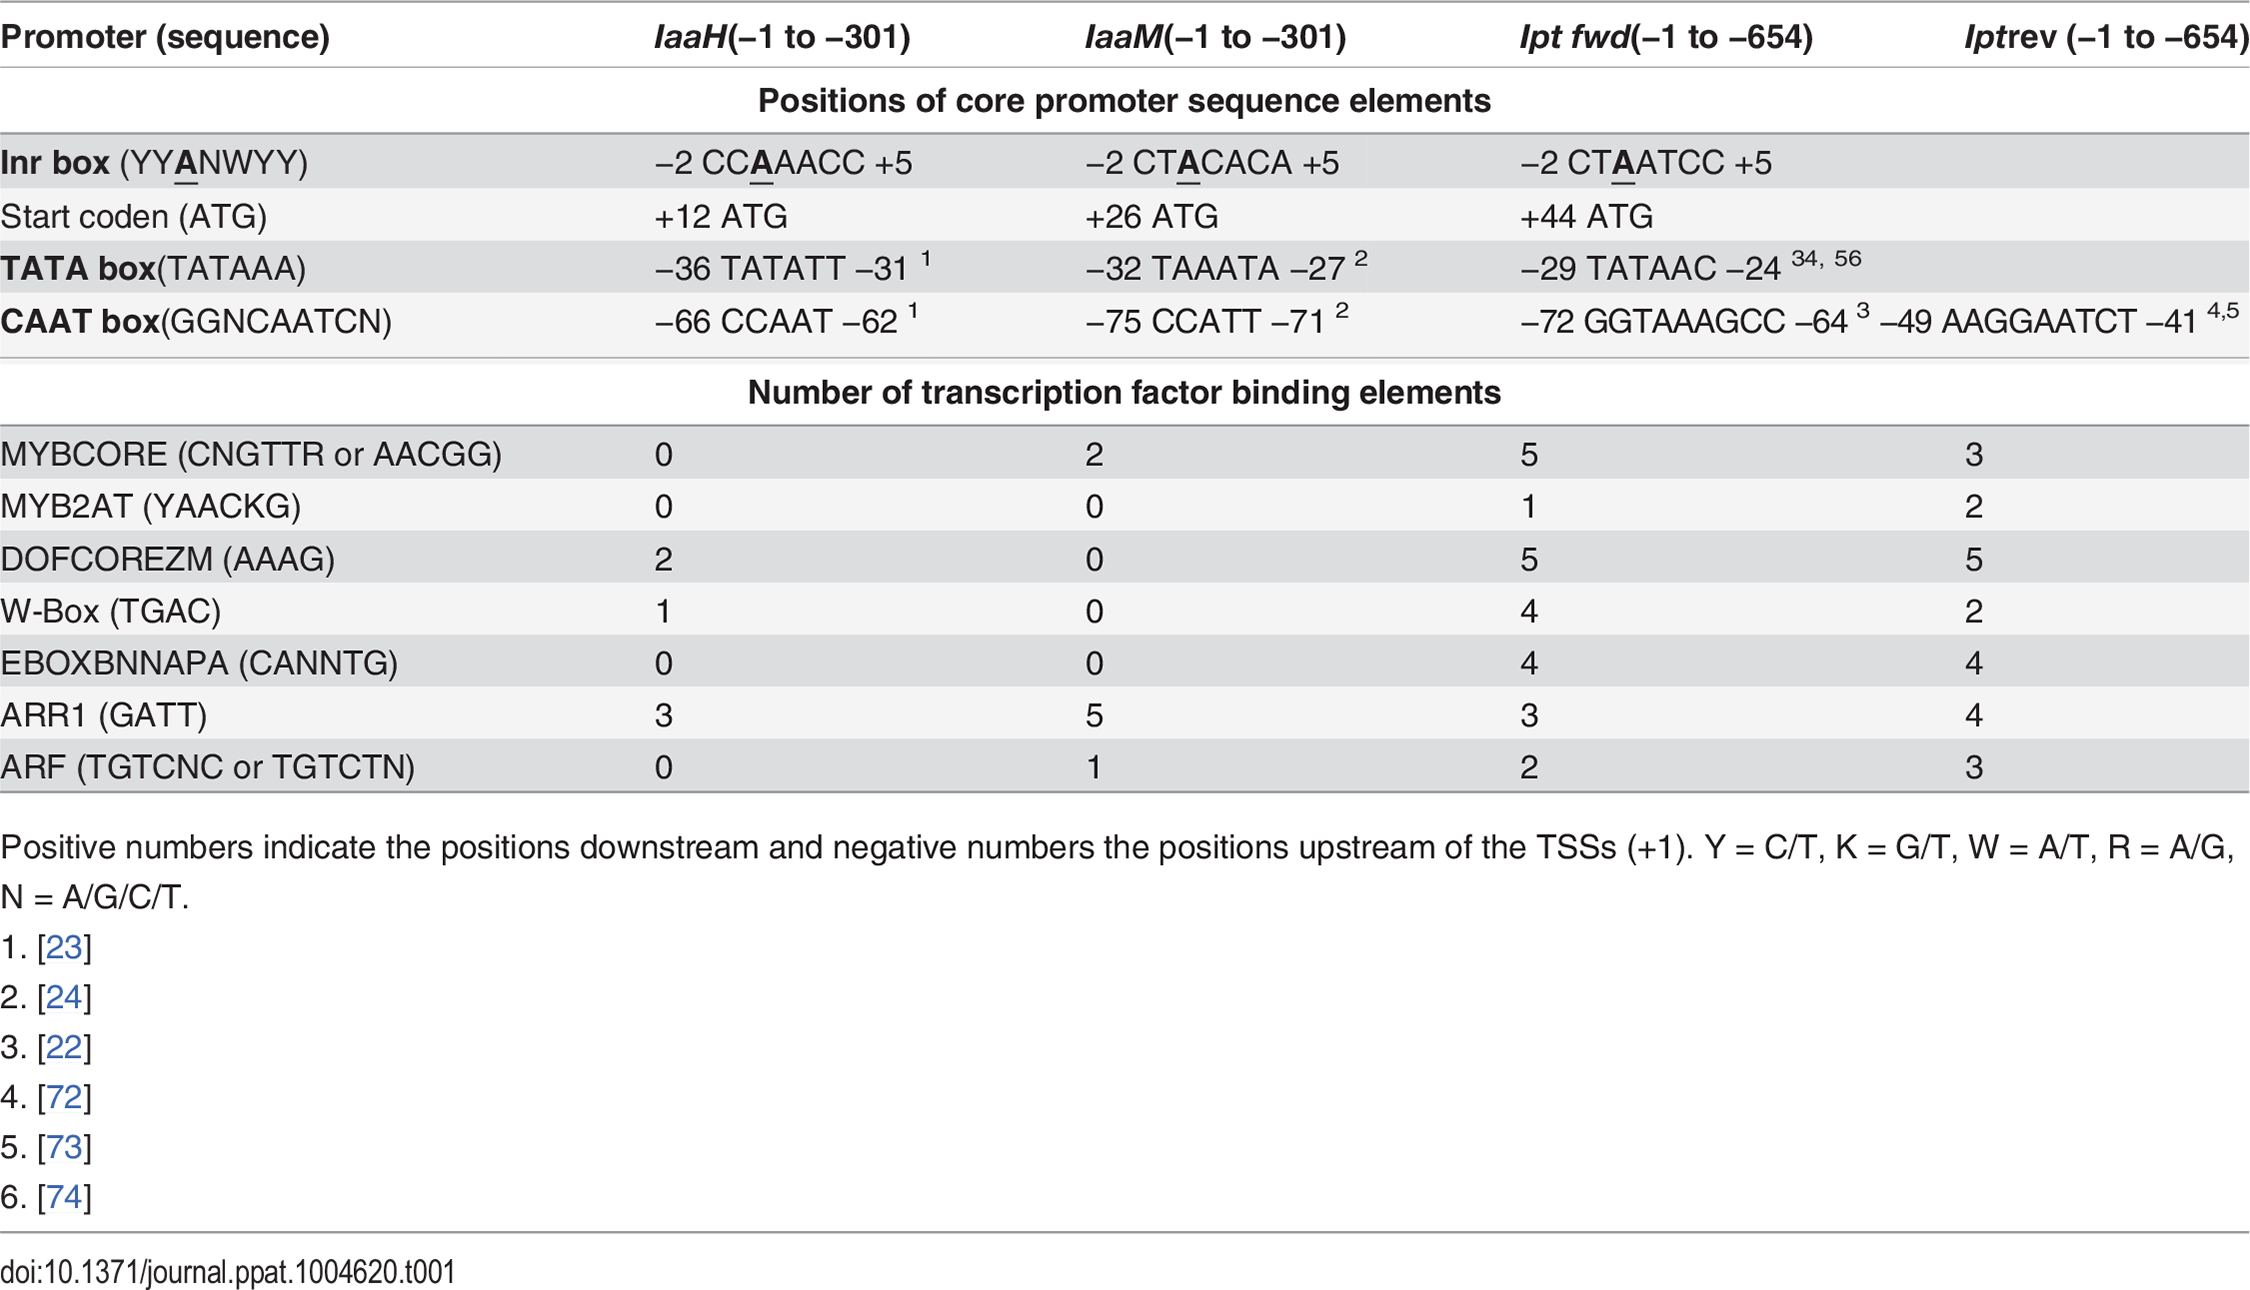 <i>Cis</i>-regulatory sequence elements within the promoter of the oncogenes <i>IaaH, IaaM</i> and <i>Ipt</i> encoded on the T-DNA of the Ti plasmid from <i>A. tumefaciens</i> strain C58, pTiC58.